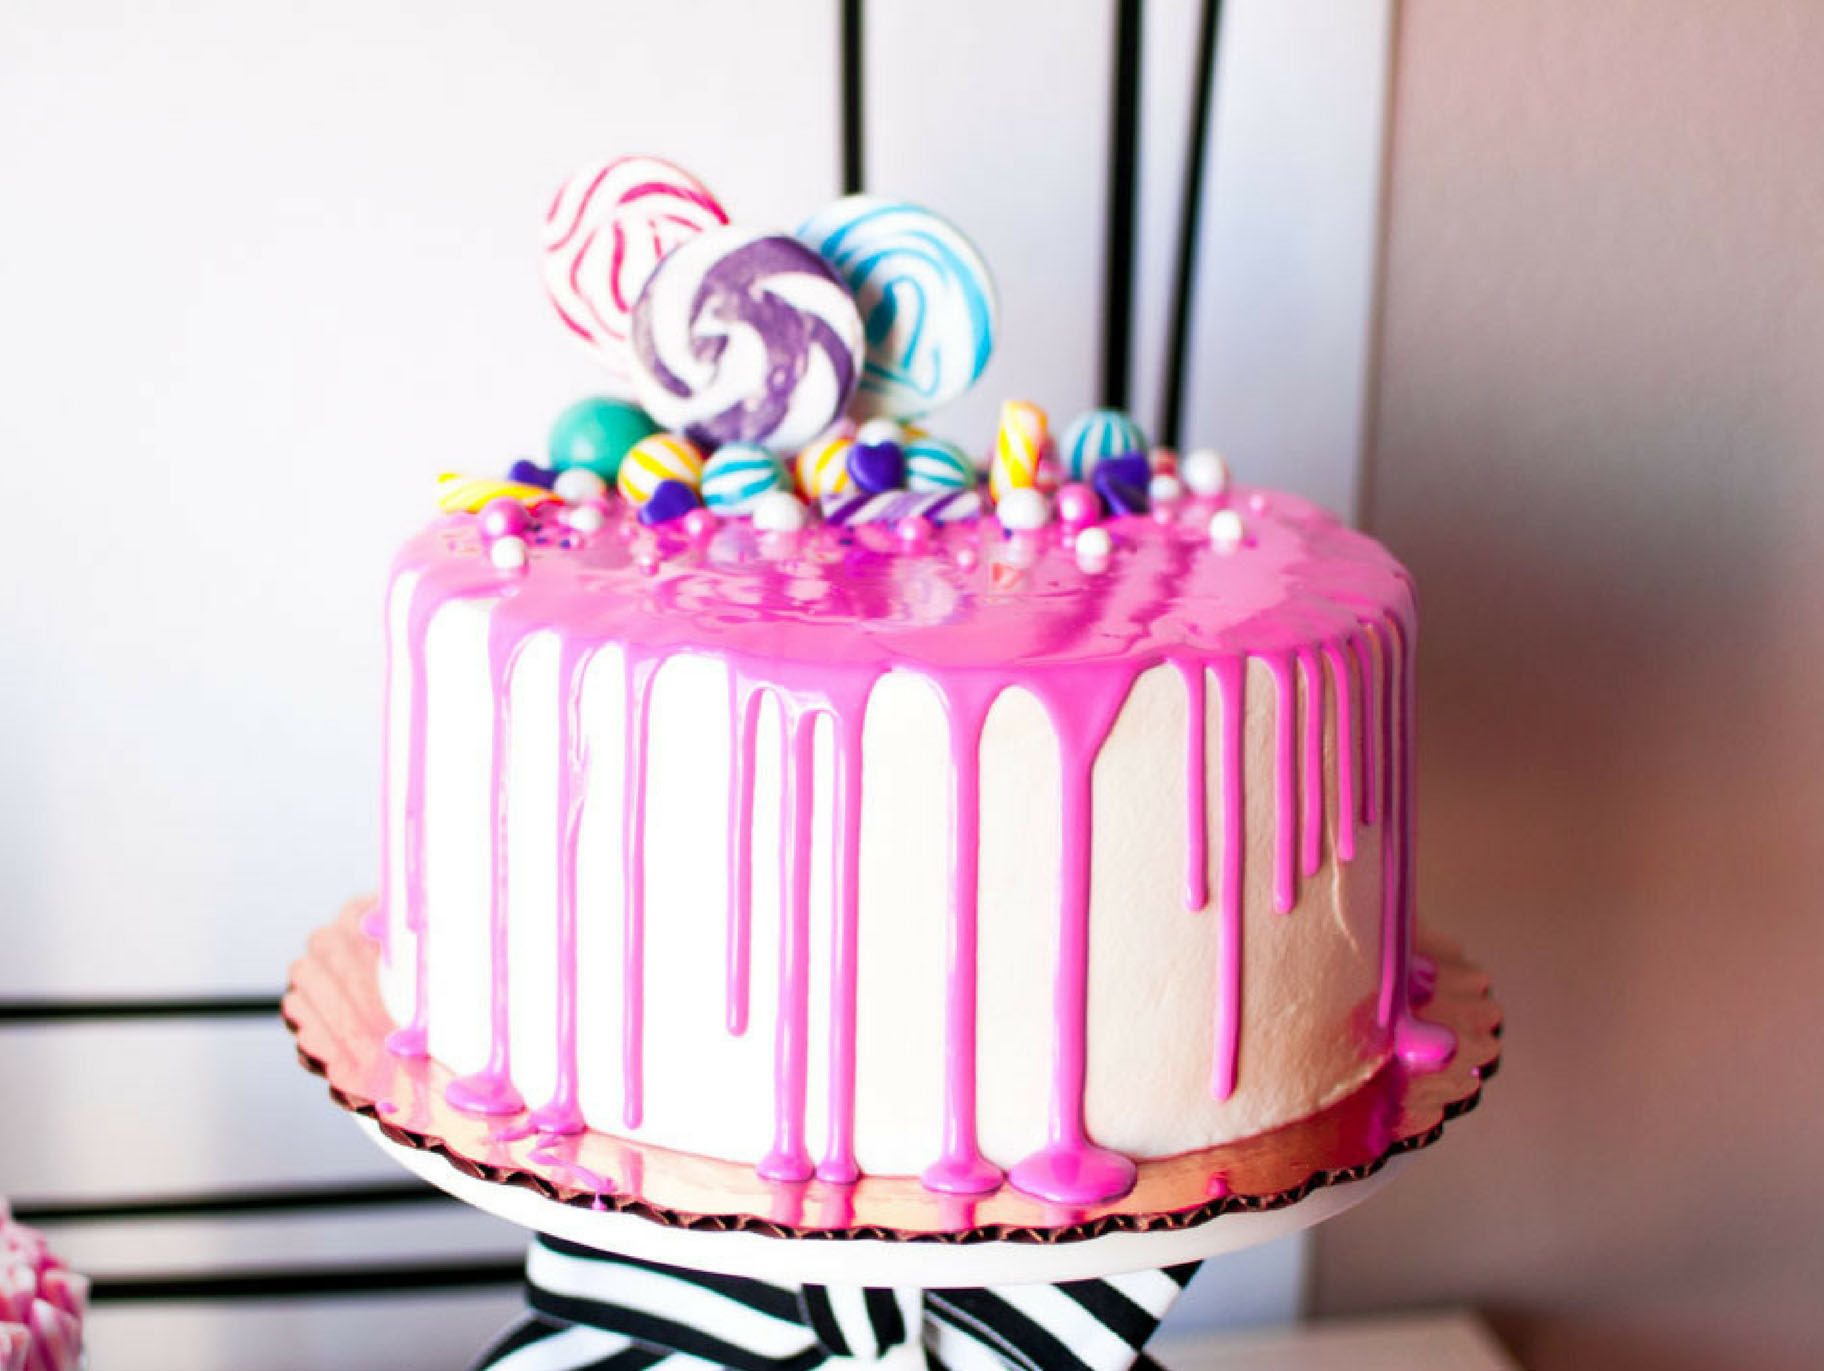 Stupendous Candy Embellished Store Bought Drip Cake Fun365 Funny Birthday Cards Online Bapapcheapnameinfo